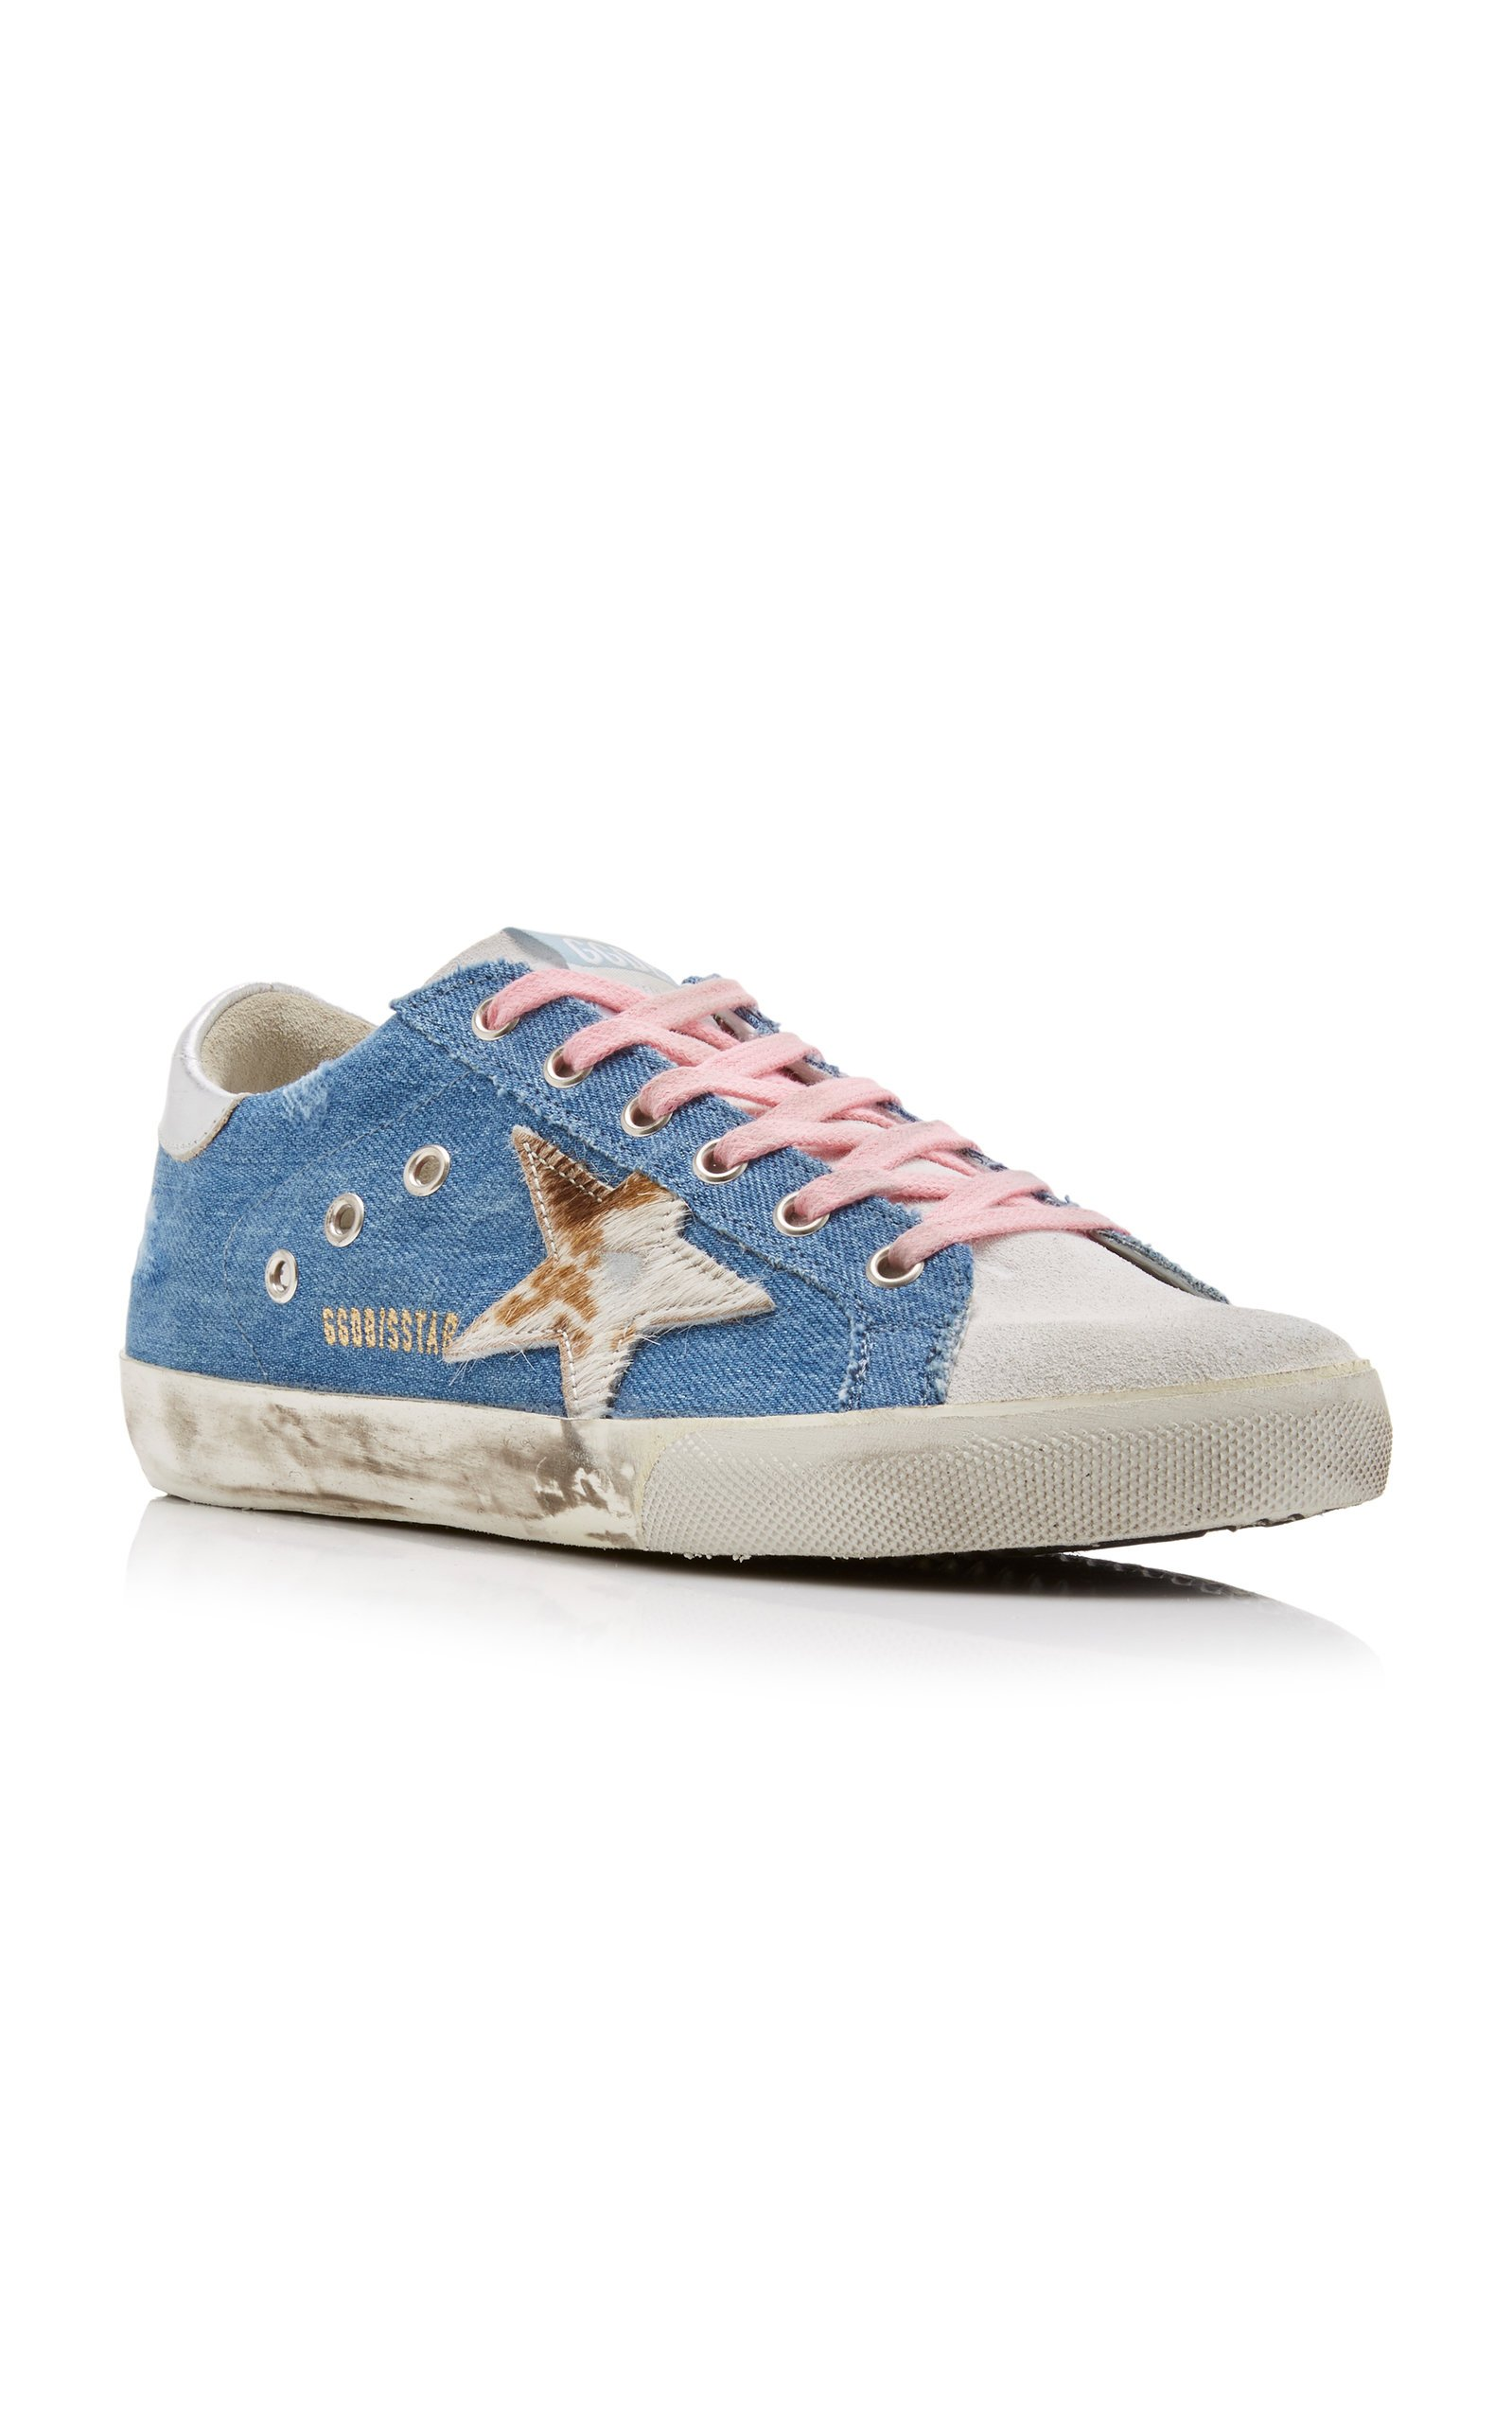 Superstar Denim And Leather Sneakers By